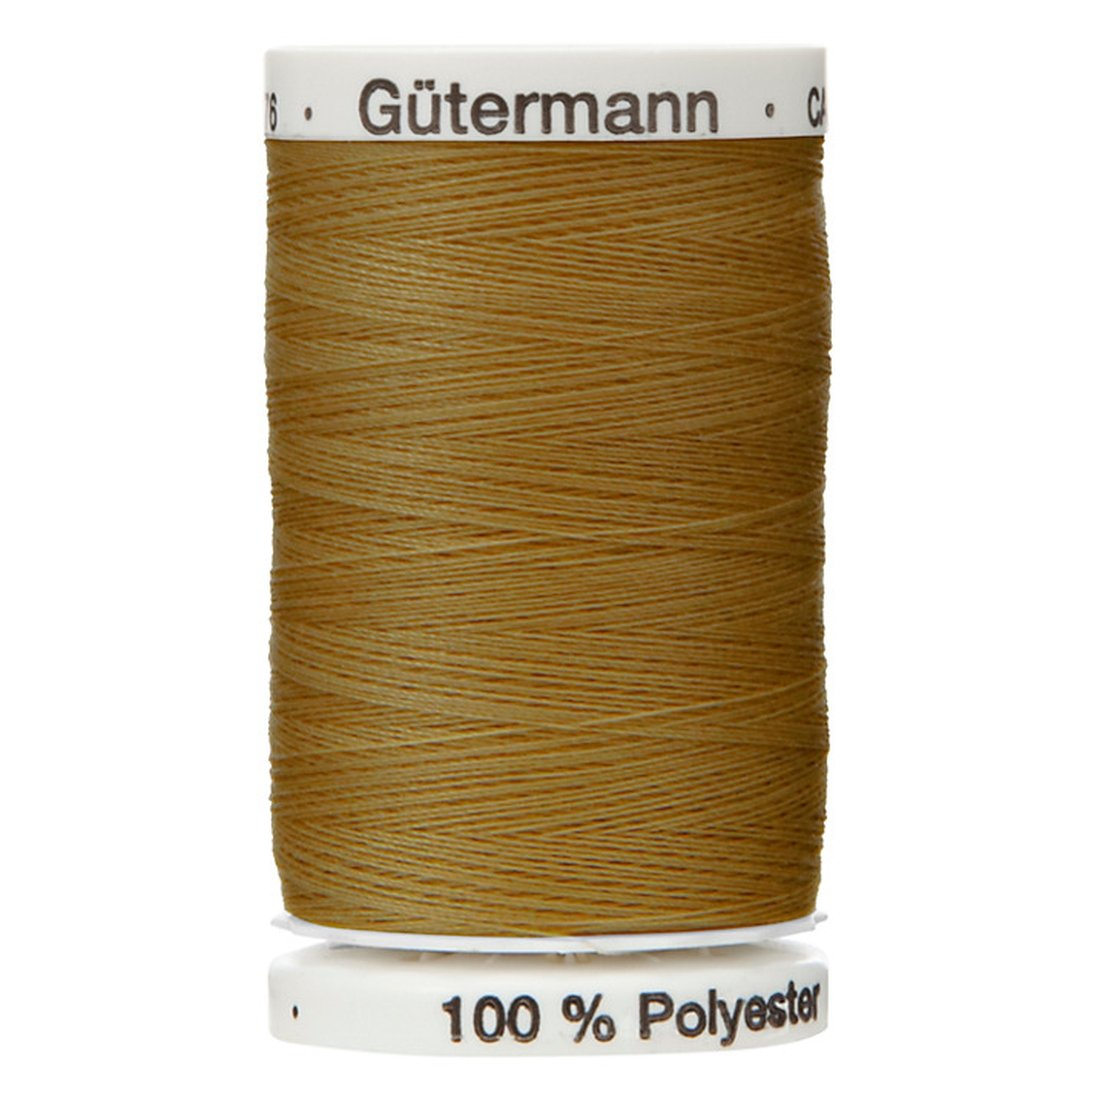 Colour 124 Gutermann Top Stitch Sewing Thread Extra Strong Thick Polyester Upholstery Jeans Denim Button Stitch (1 x 30 Meter Spool)